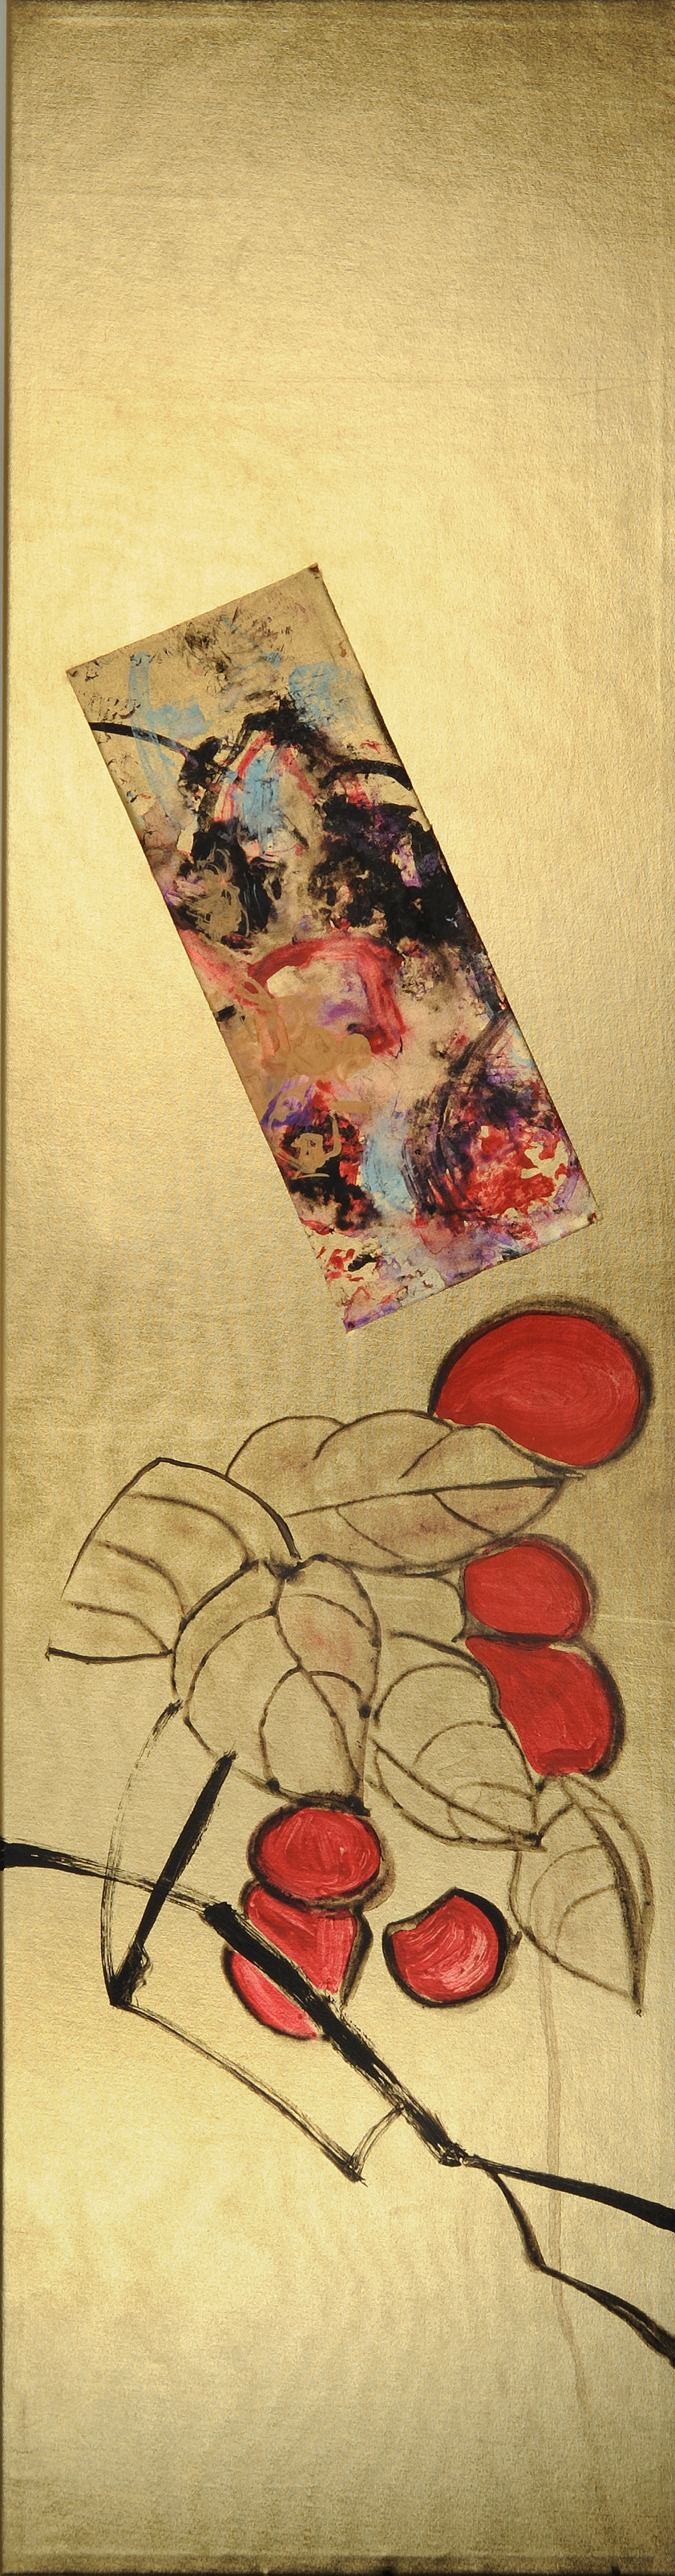 "Rama de Baya (Berry Branch)   Acrylic on gold lamé  38"" x 10""  $700   Click here to Inquire ."